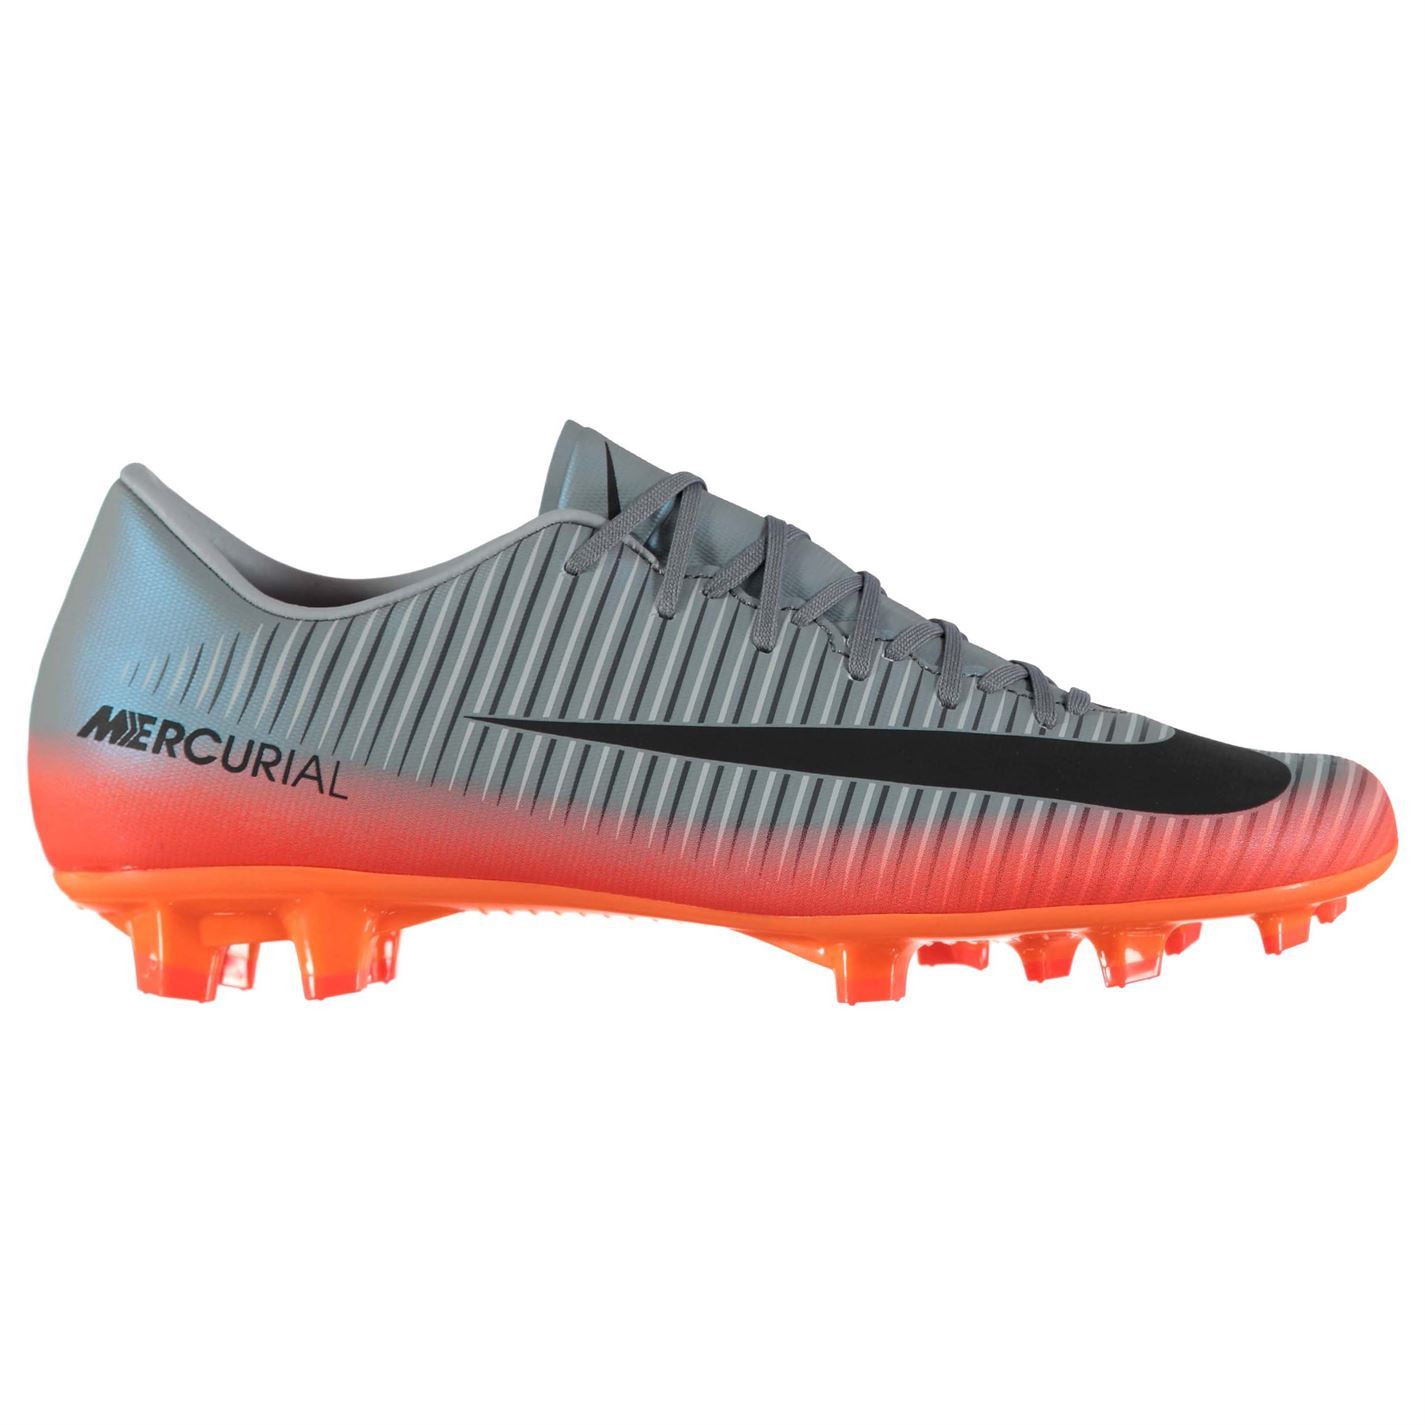 2ed7fe706f5 ... Nike Mercurial Victory CR7 FG Firm Ground Football Boots Mens Gry Soccer  Shoes ...